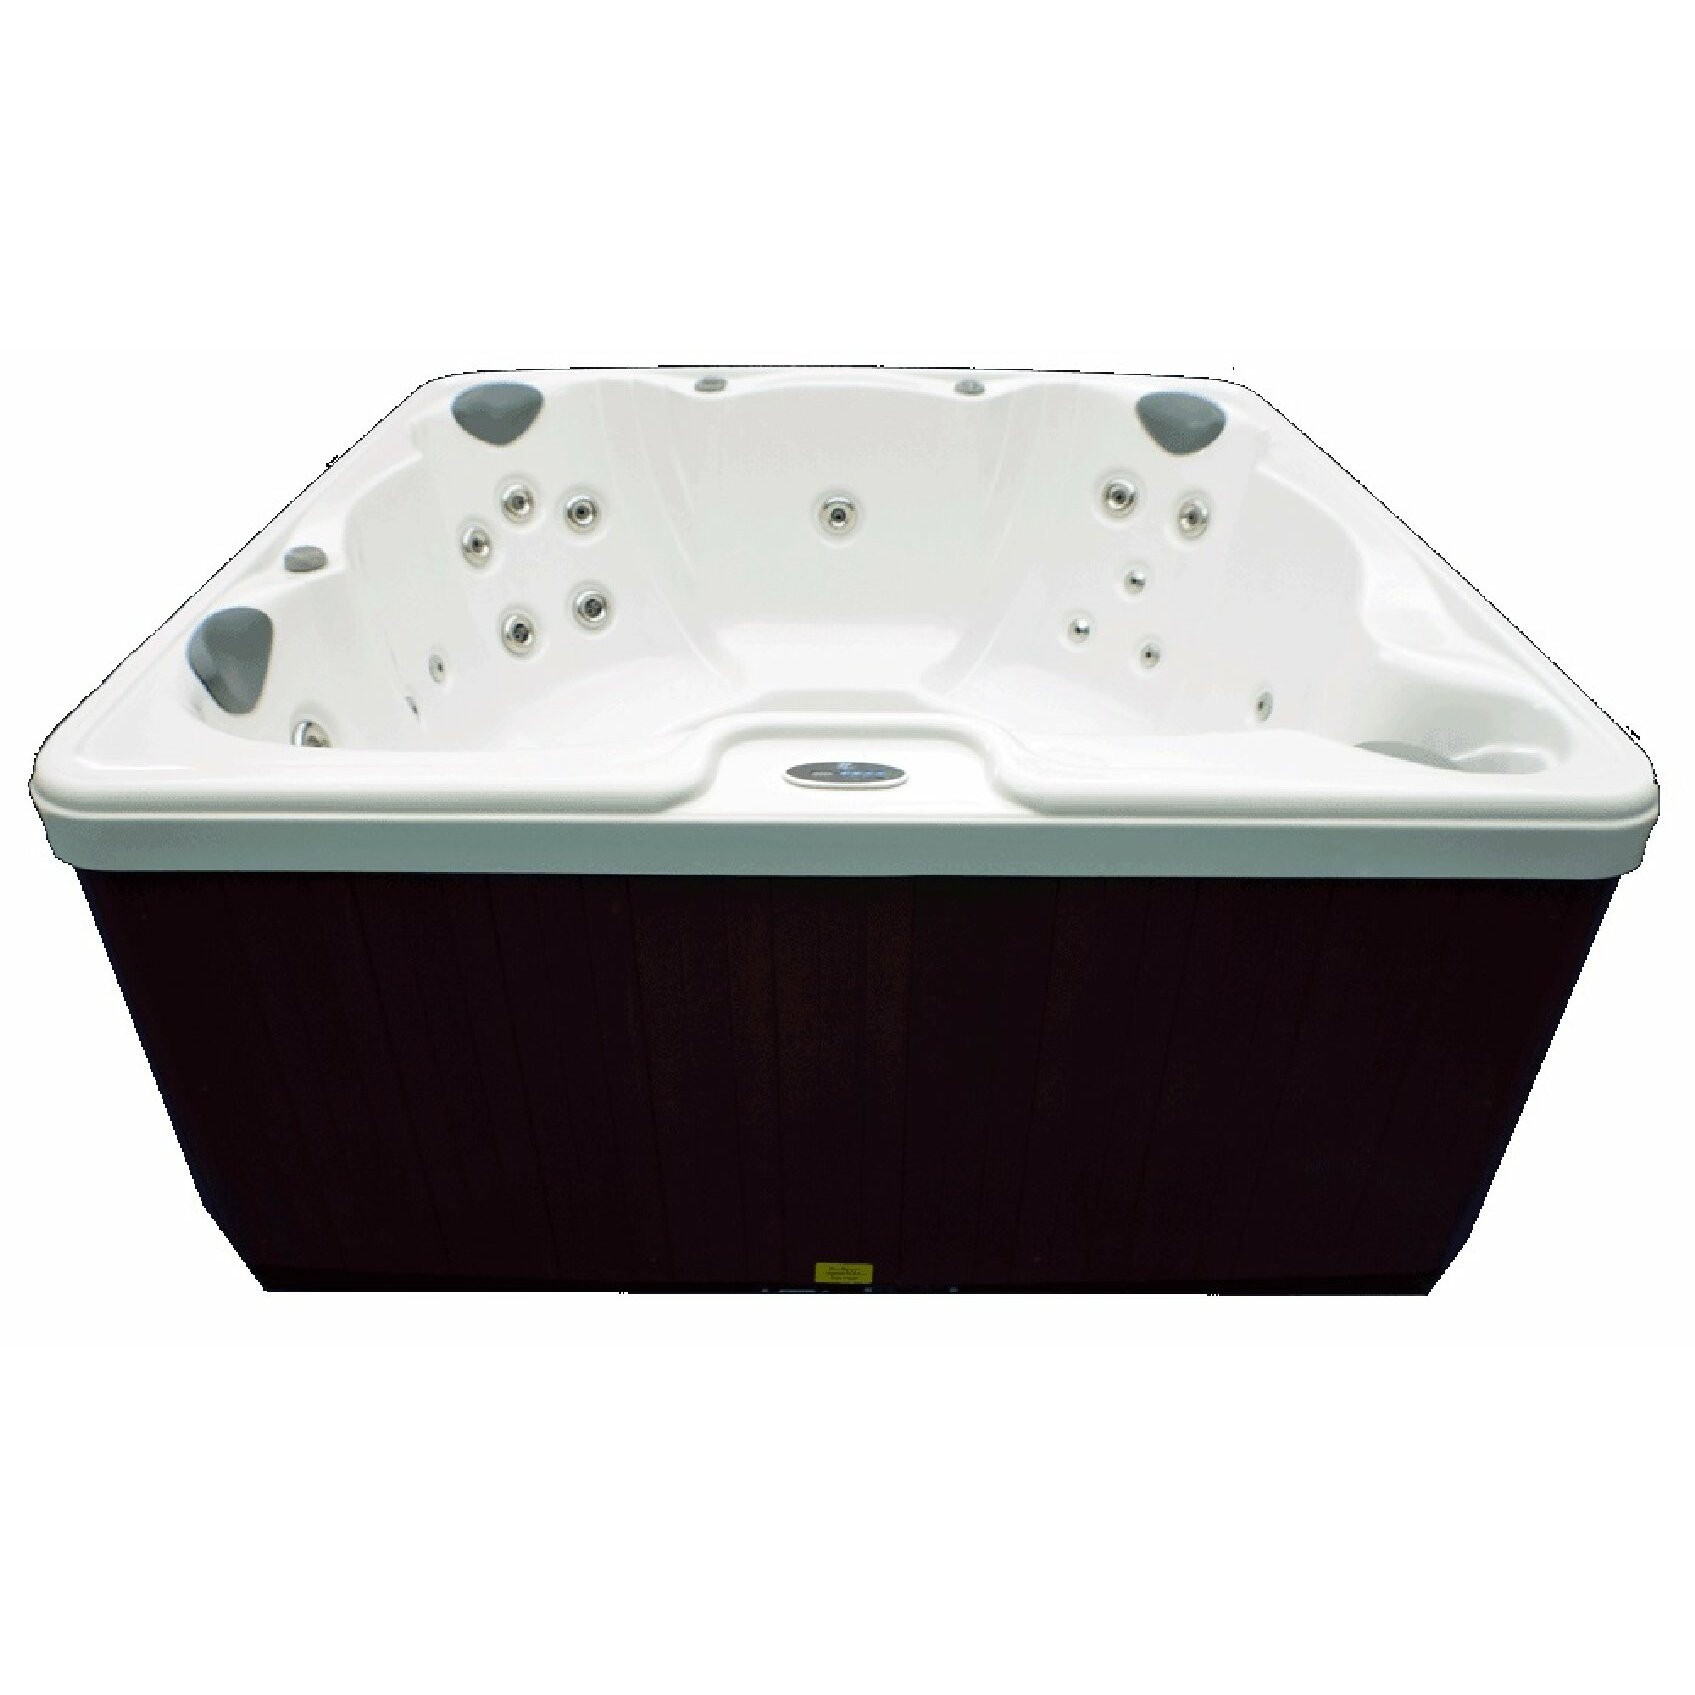 Home And Garden Spas 6 Person 51 Jet Spa With Waterfall